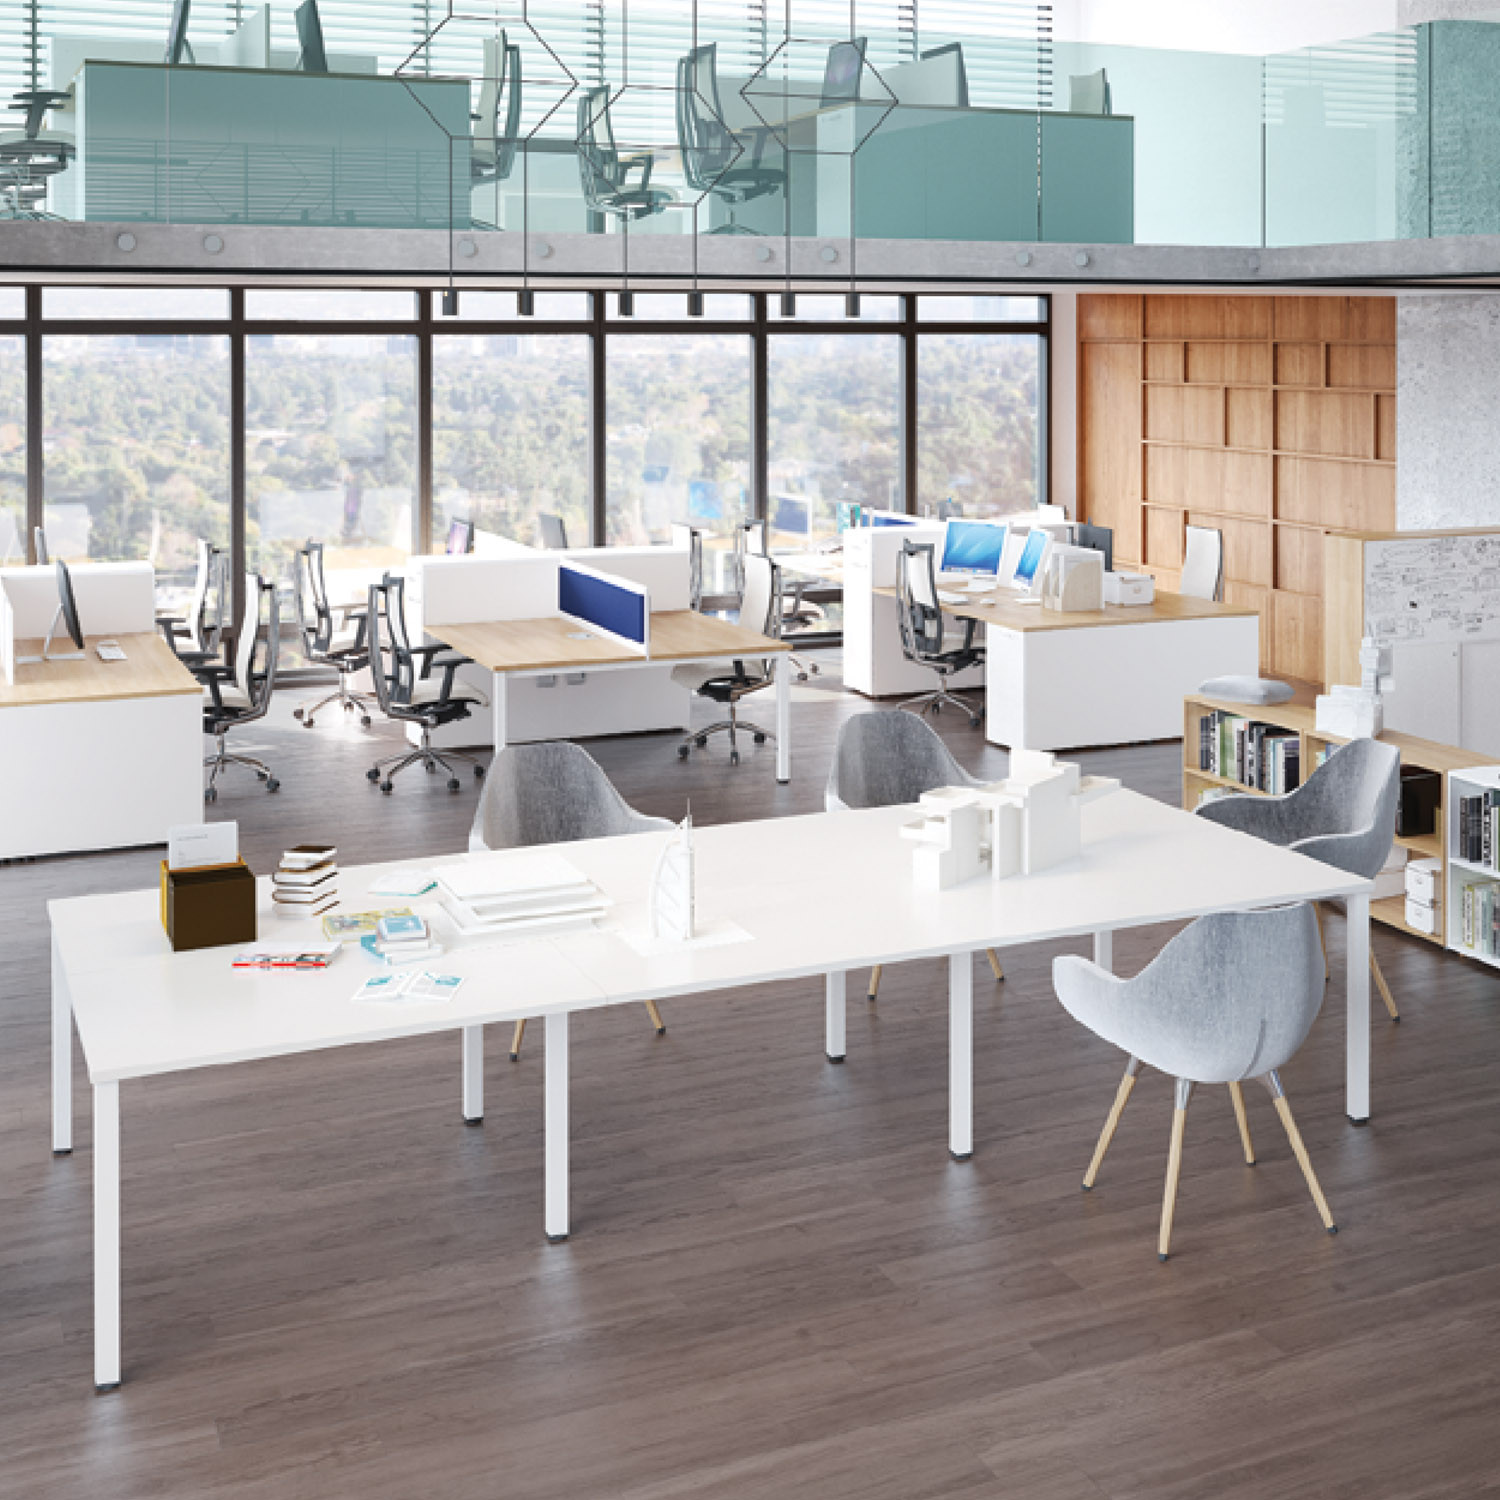 Flexido Bench Desk System from Mikomax